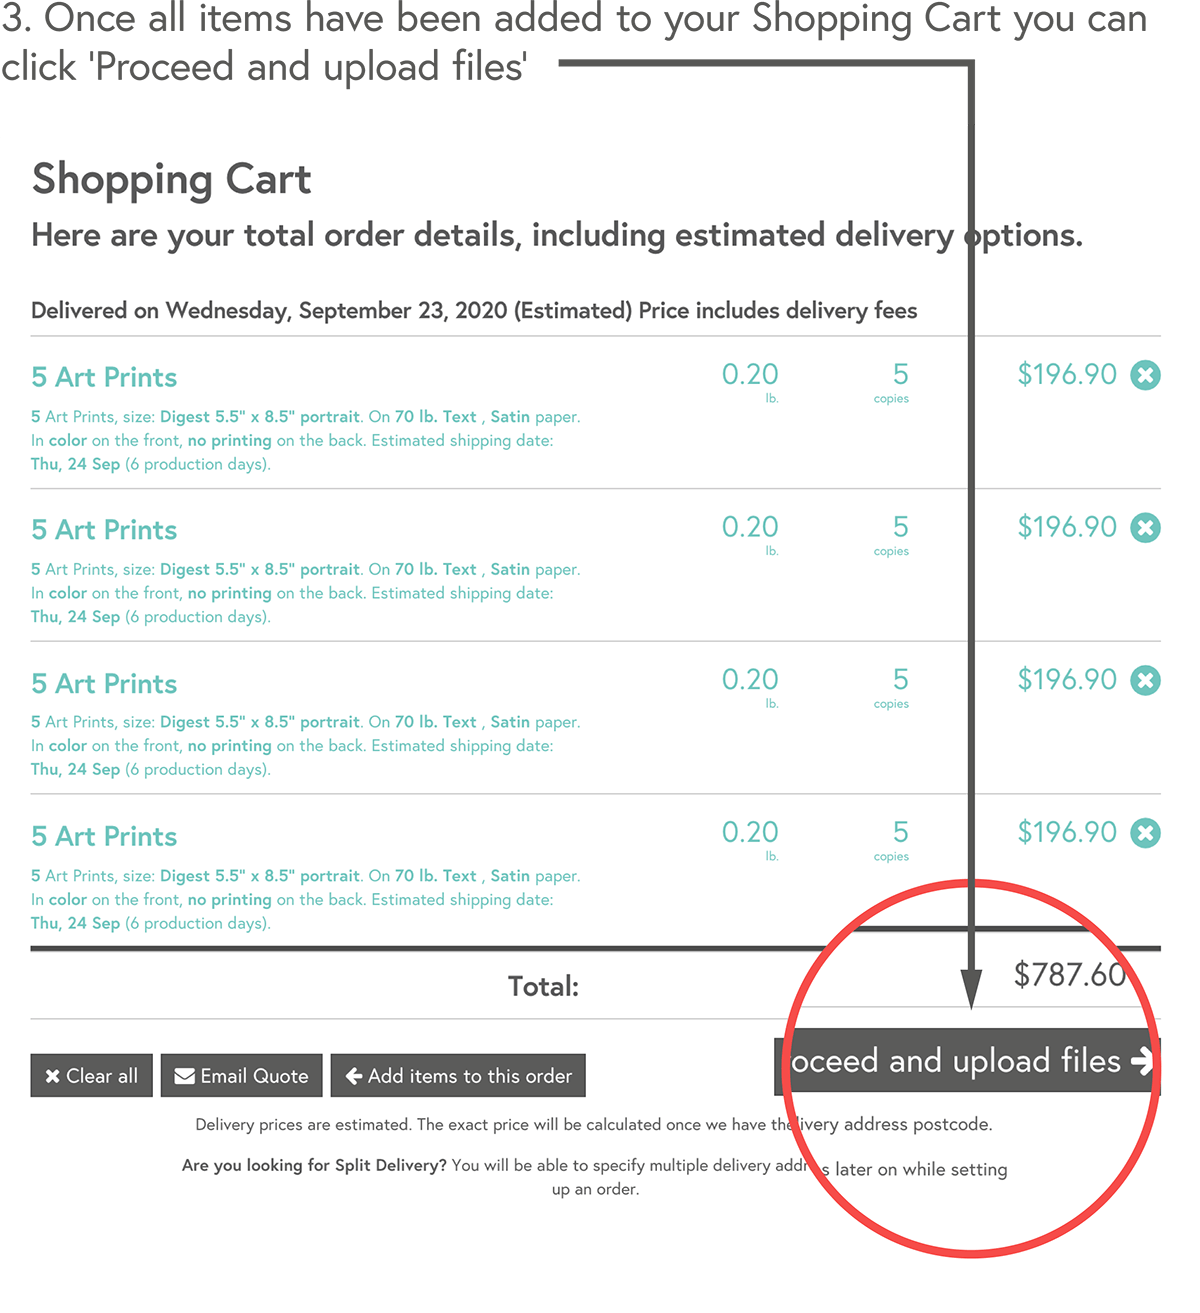 Once all items have been added to your Shopping Cart you can click 'Proceed and upload files'